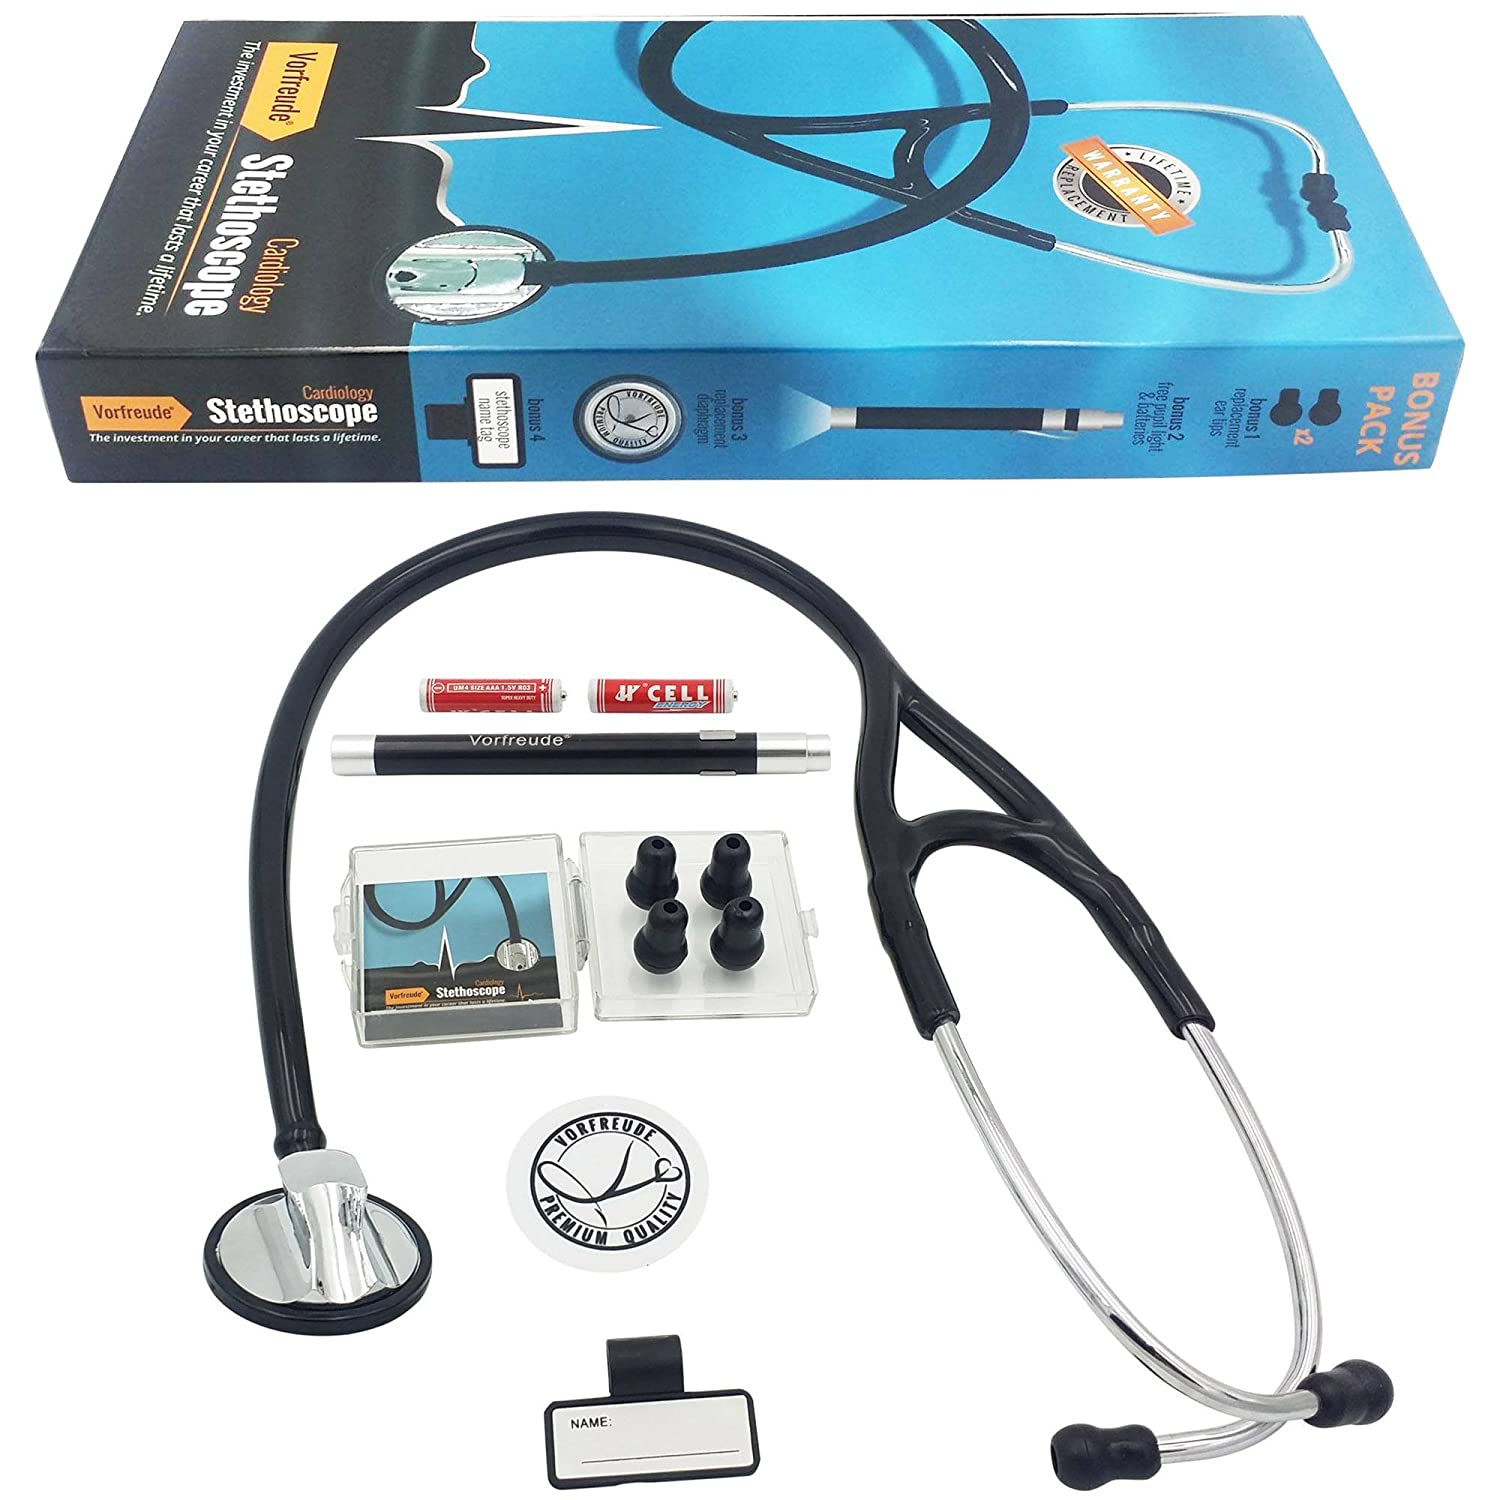 The Stethoscope Pros Page 2 Of 3 Your 1 Source For Medical Electronics Project Electronic Designing Engineering German At Its Finest